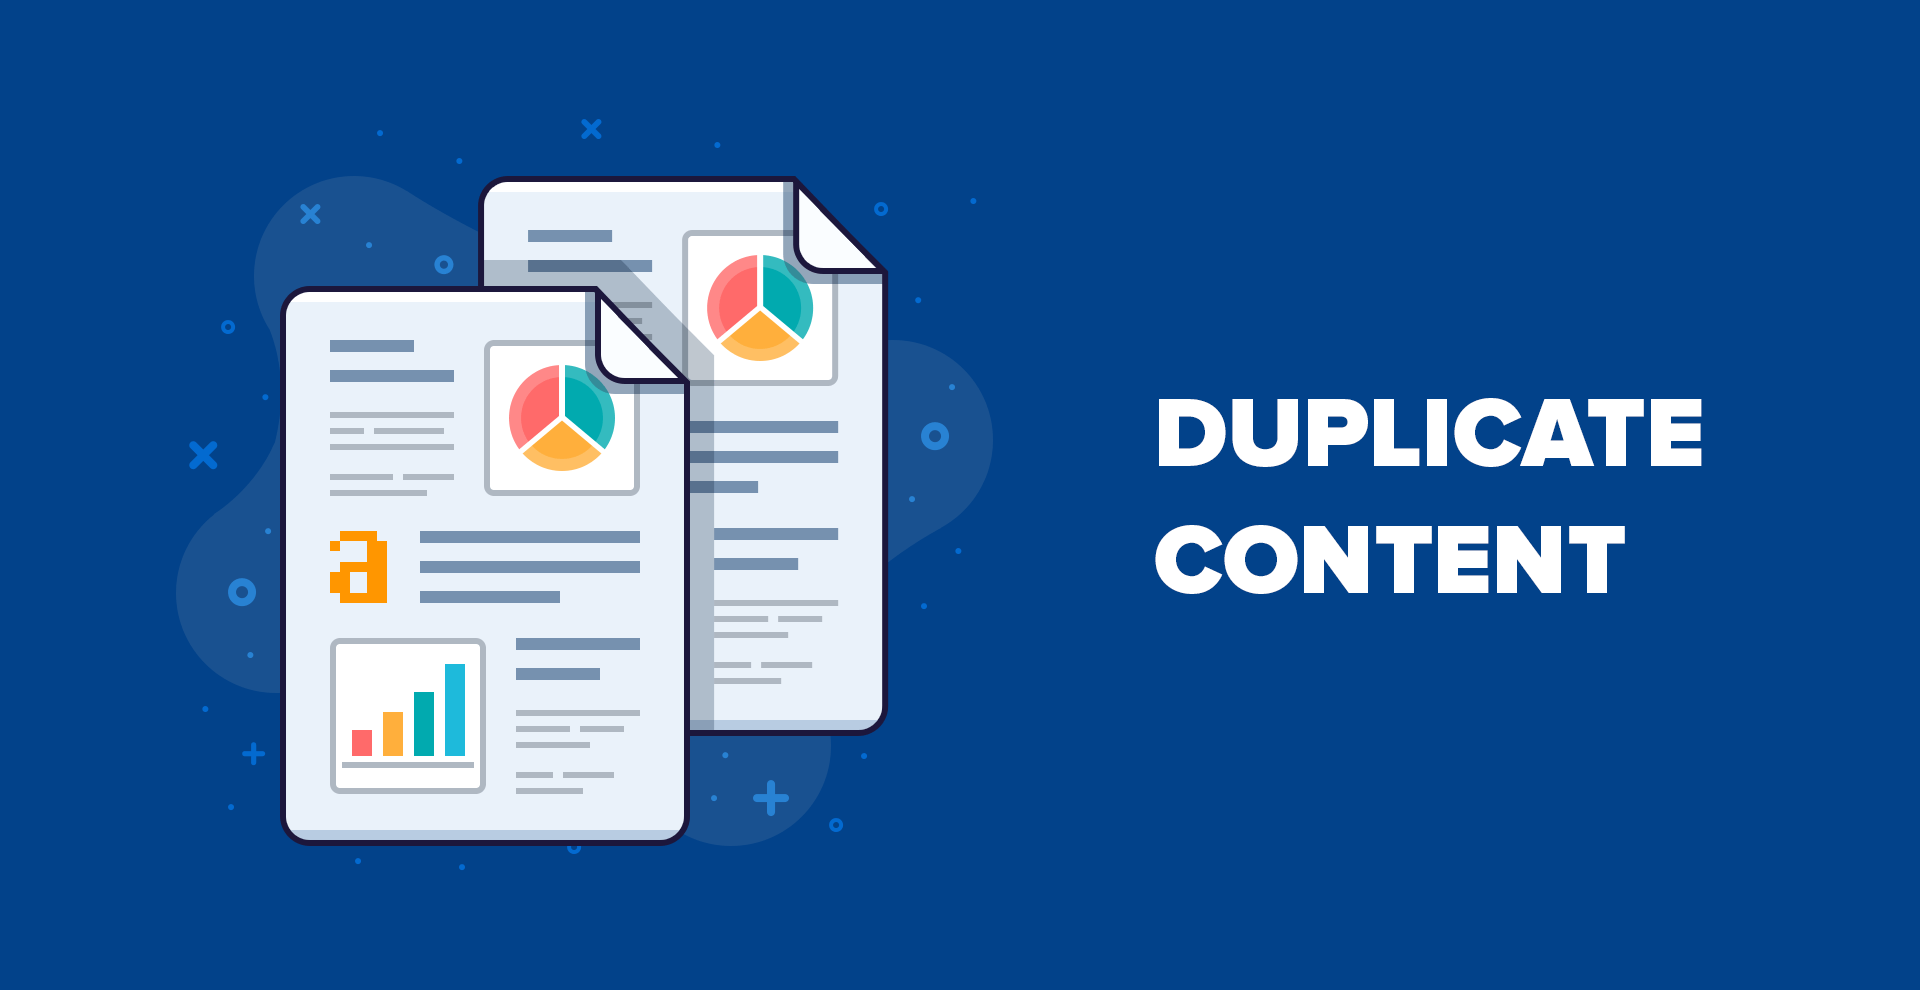 Duplicate Content: Why It Happens and How to Fix It